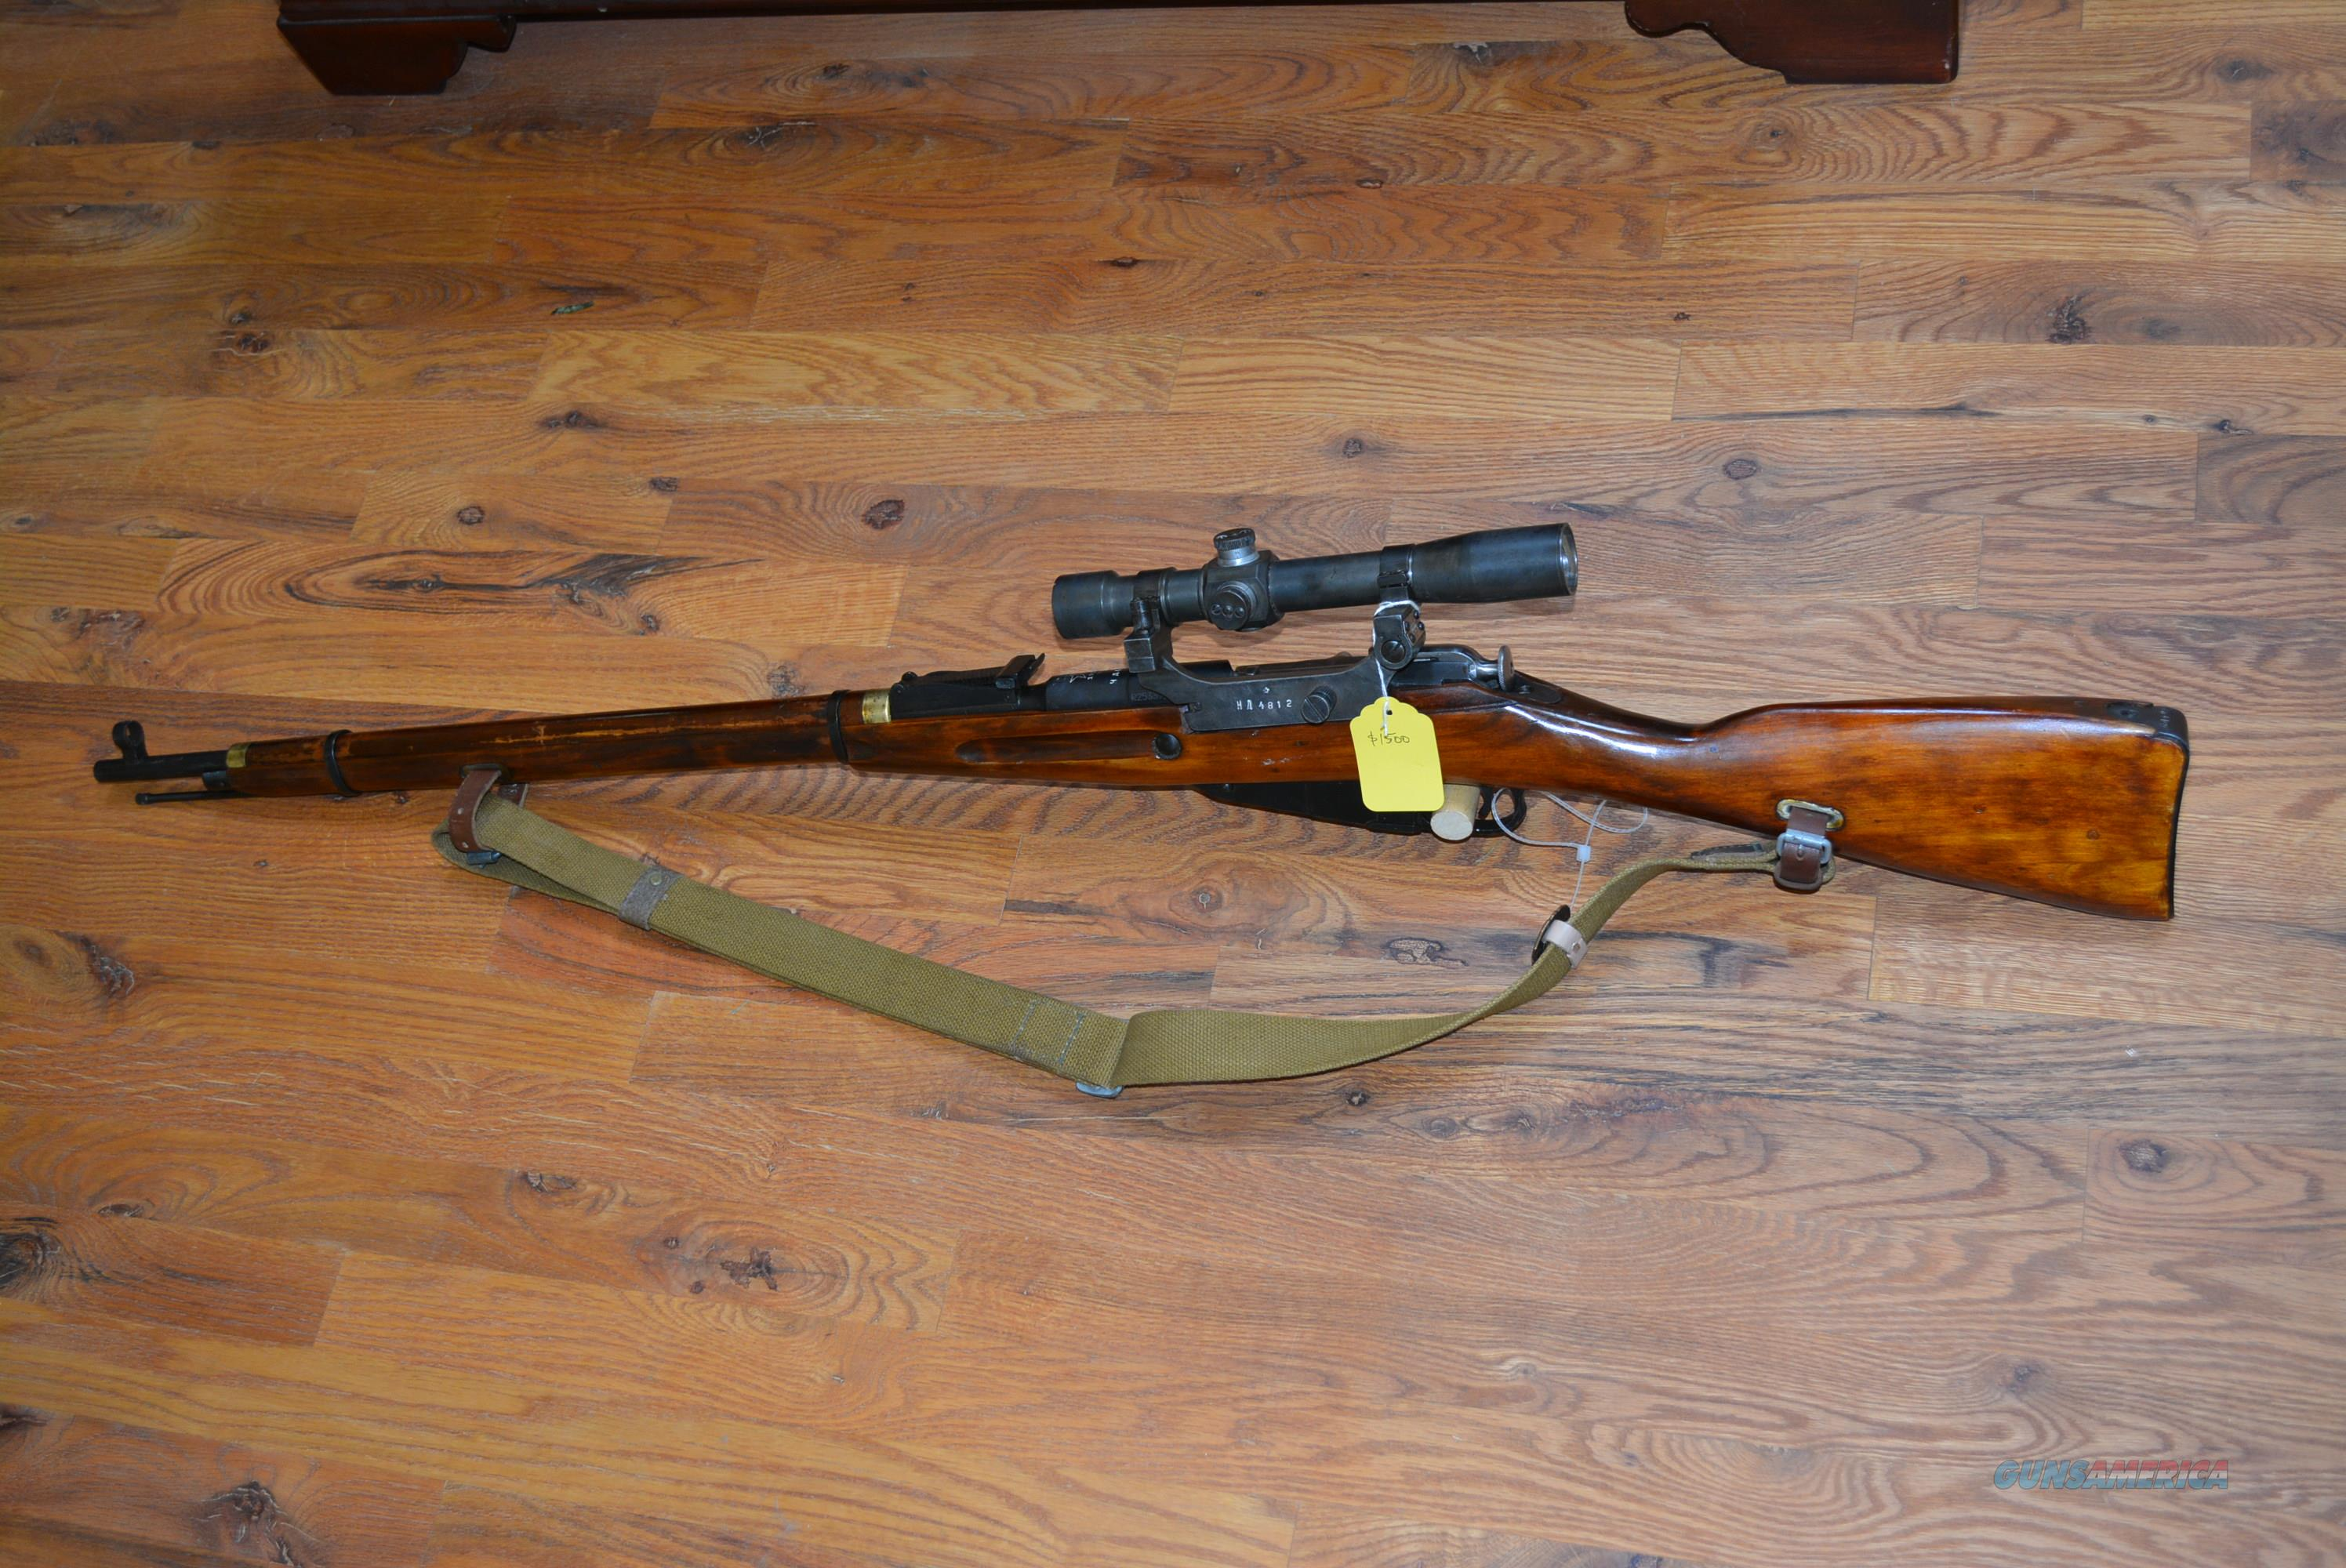 Russian Tula Mosin Nagant 91/30 PEM Sniper Rifle  Guns > Rifles > Mosin-Nagant Rifles/Carbines